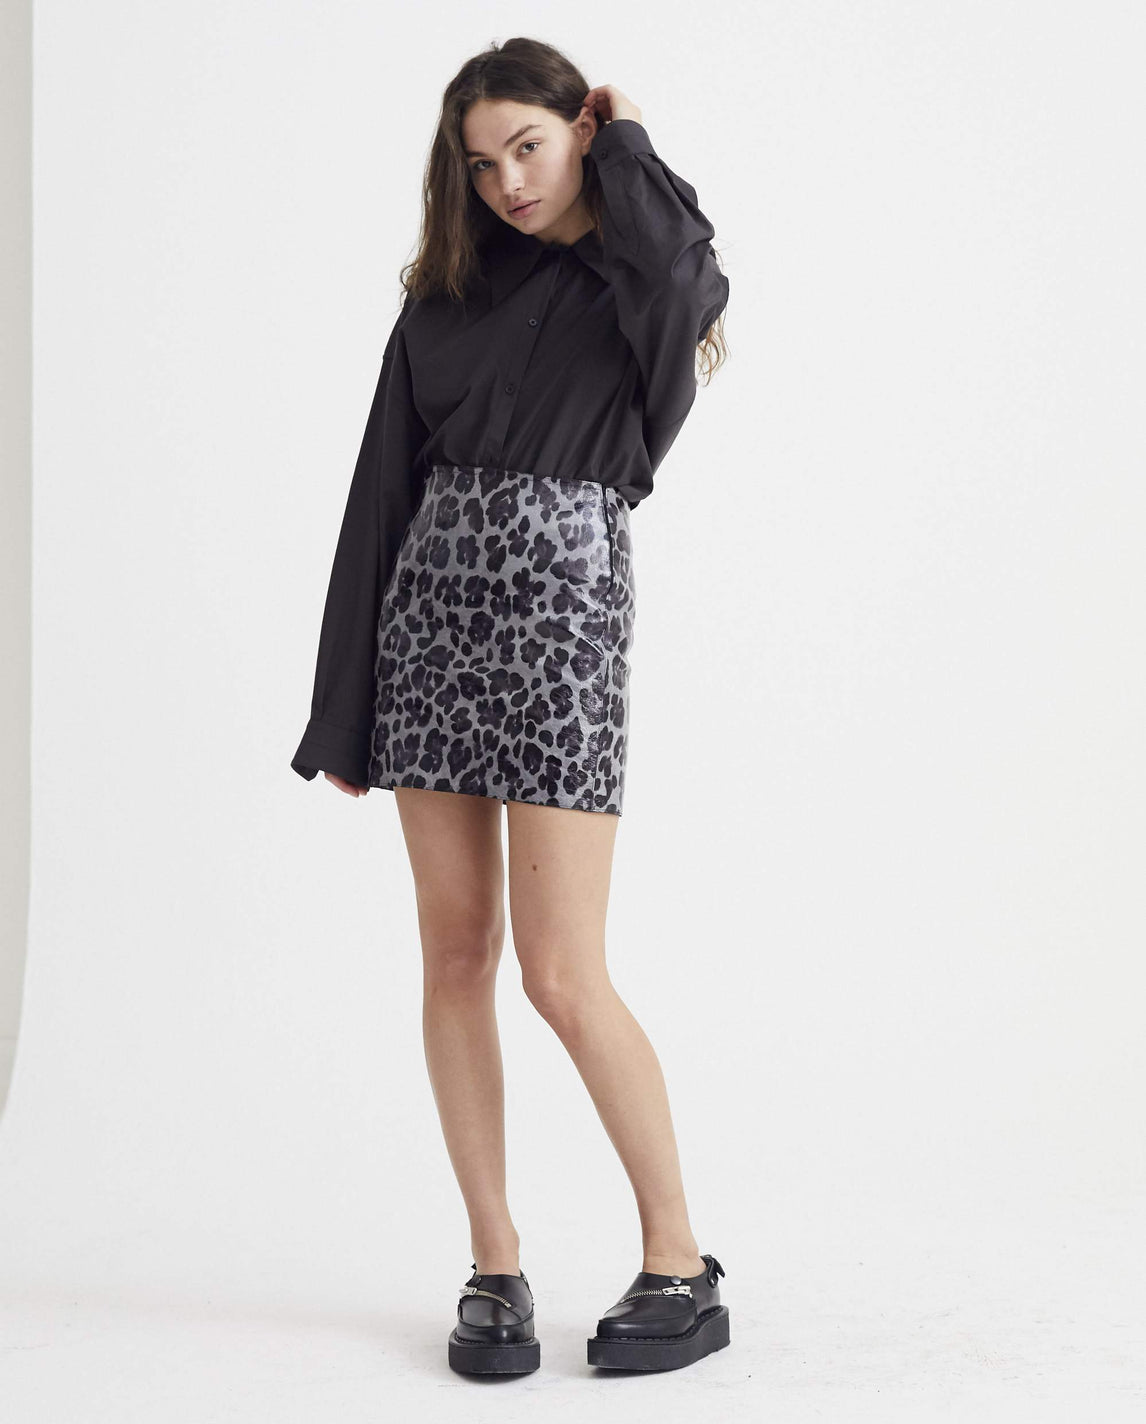 Tailored Mini Skirt - Grey and Black WOMENS ART SCHOOL